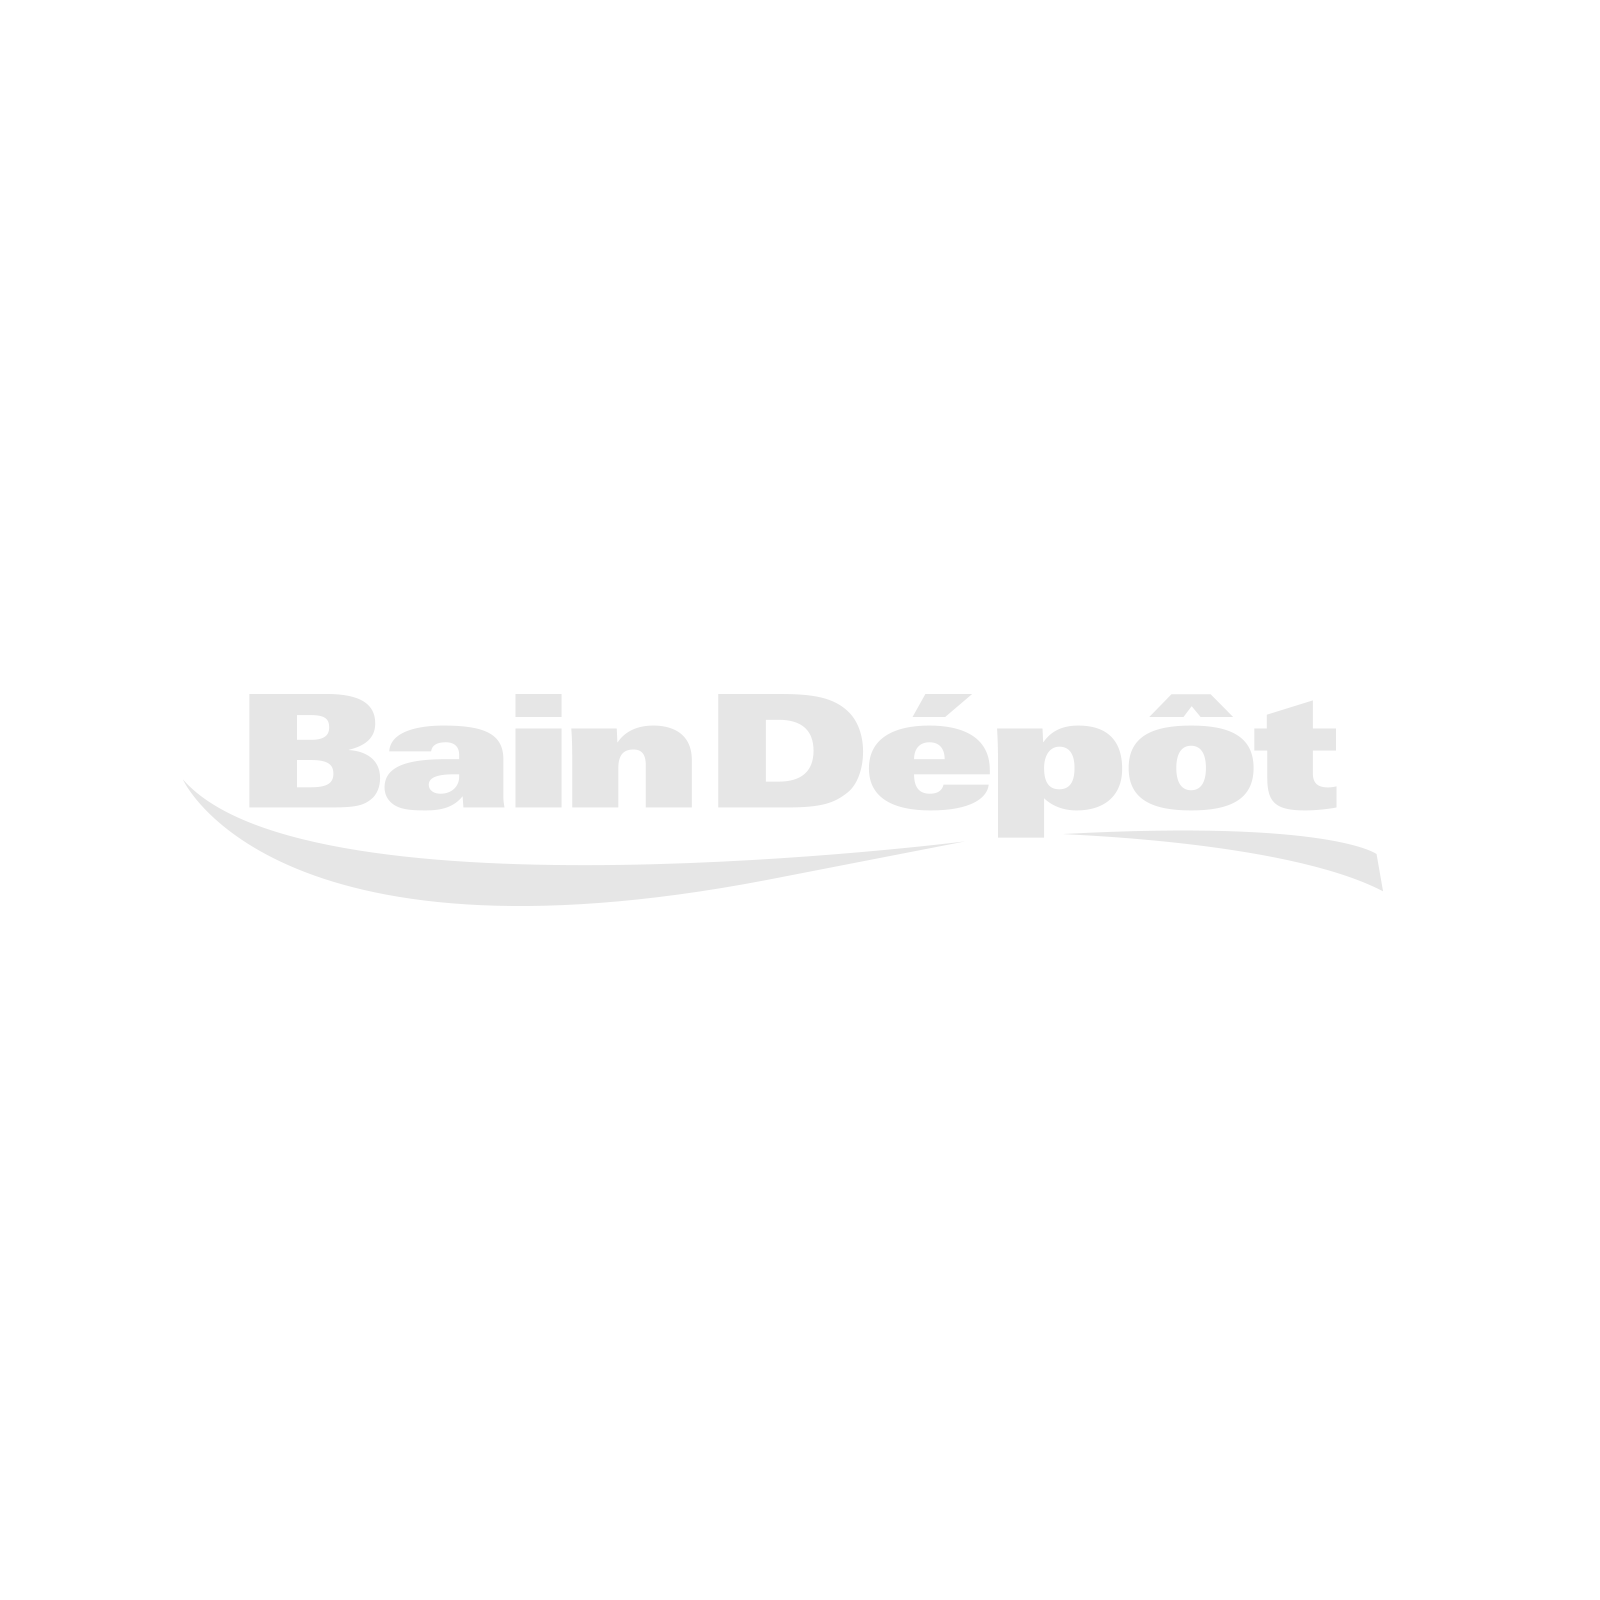 Mat black wall-mount bathroom sink faucet with single handle